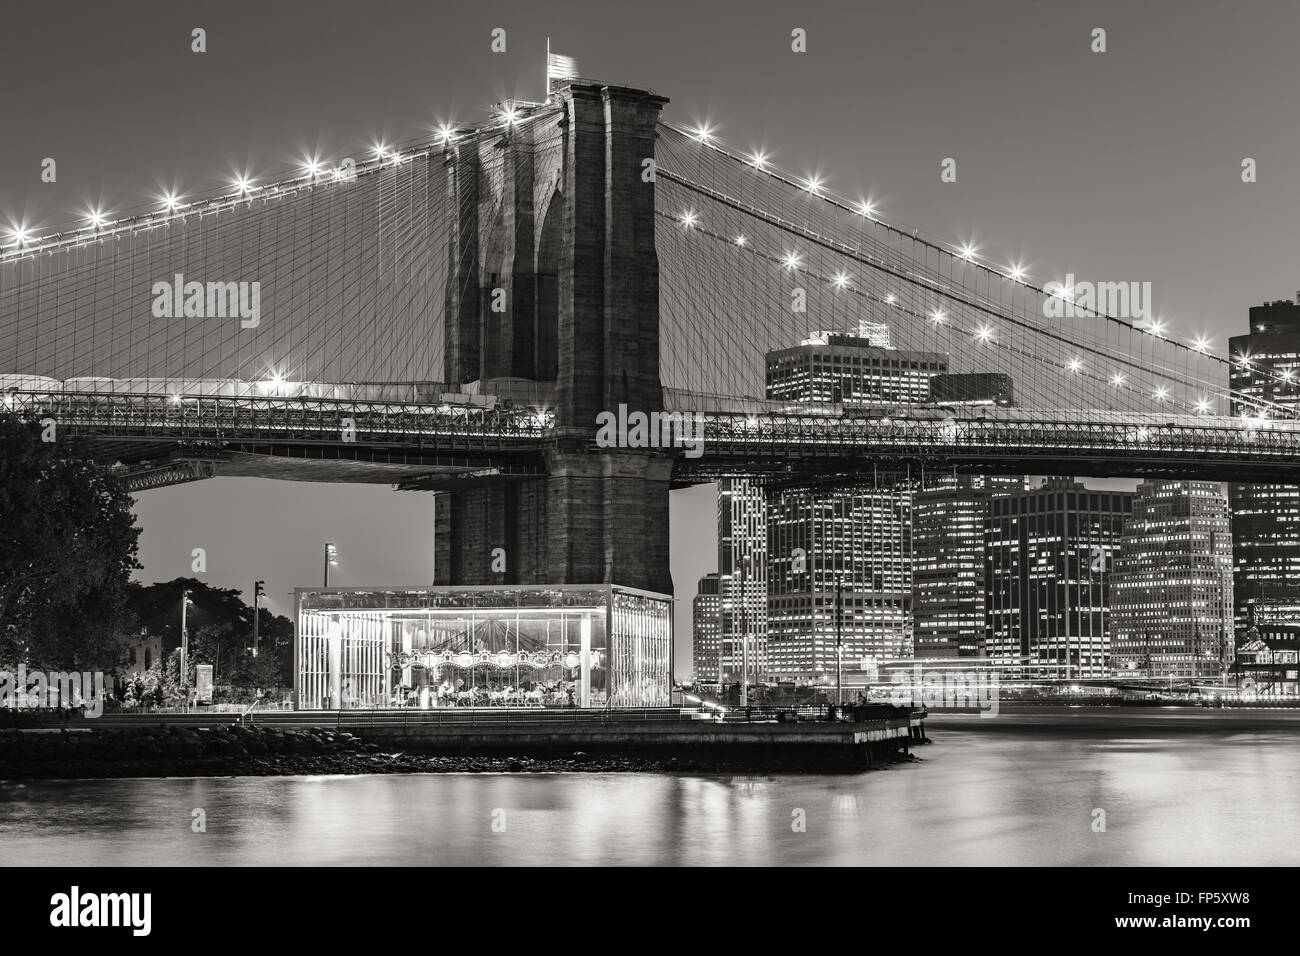 Brooklyn Bridge and carousel at twilight. New York City with Manhattan Financial District skyscrapers. Black & - Stock Image